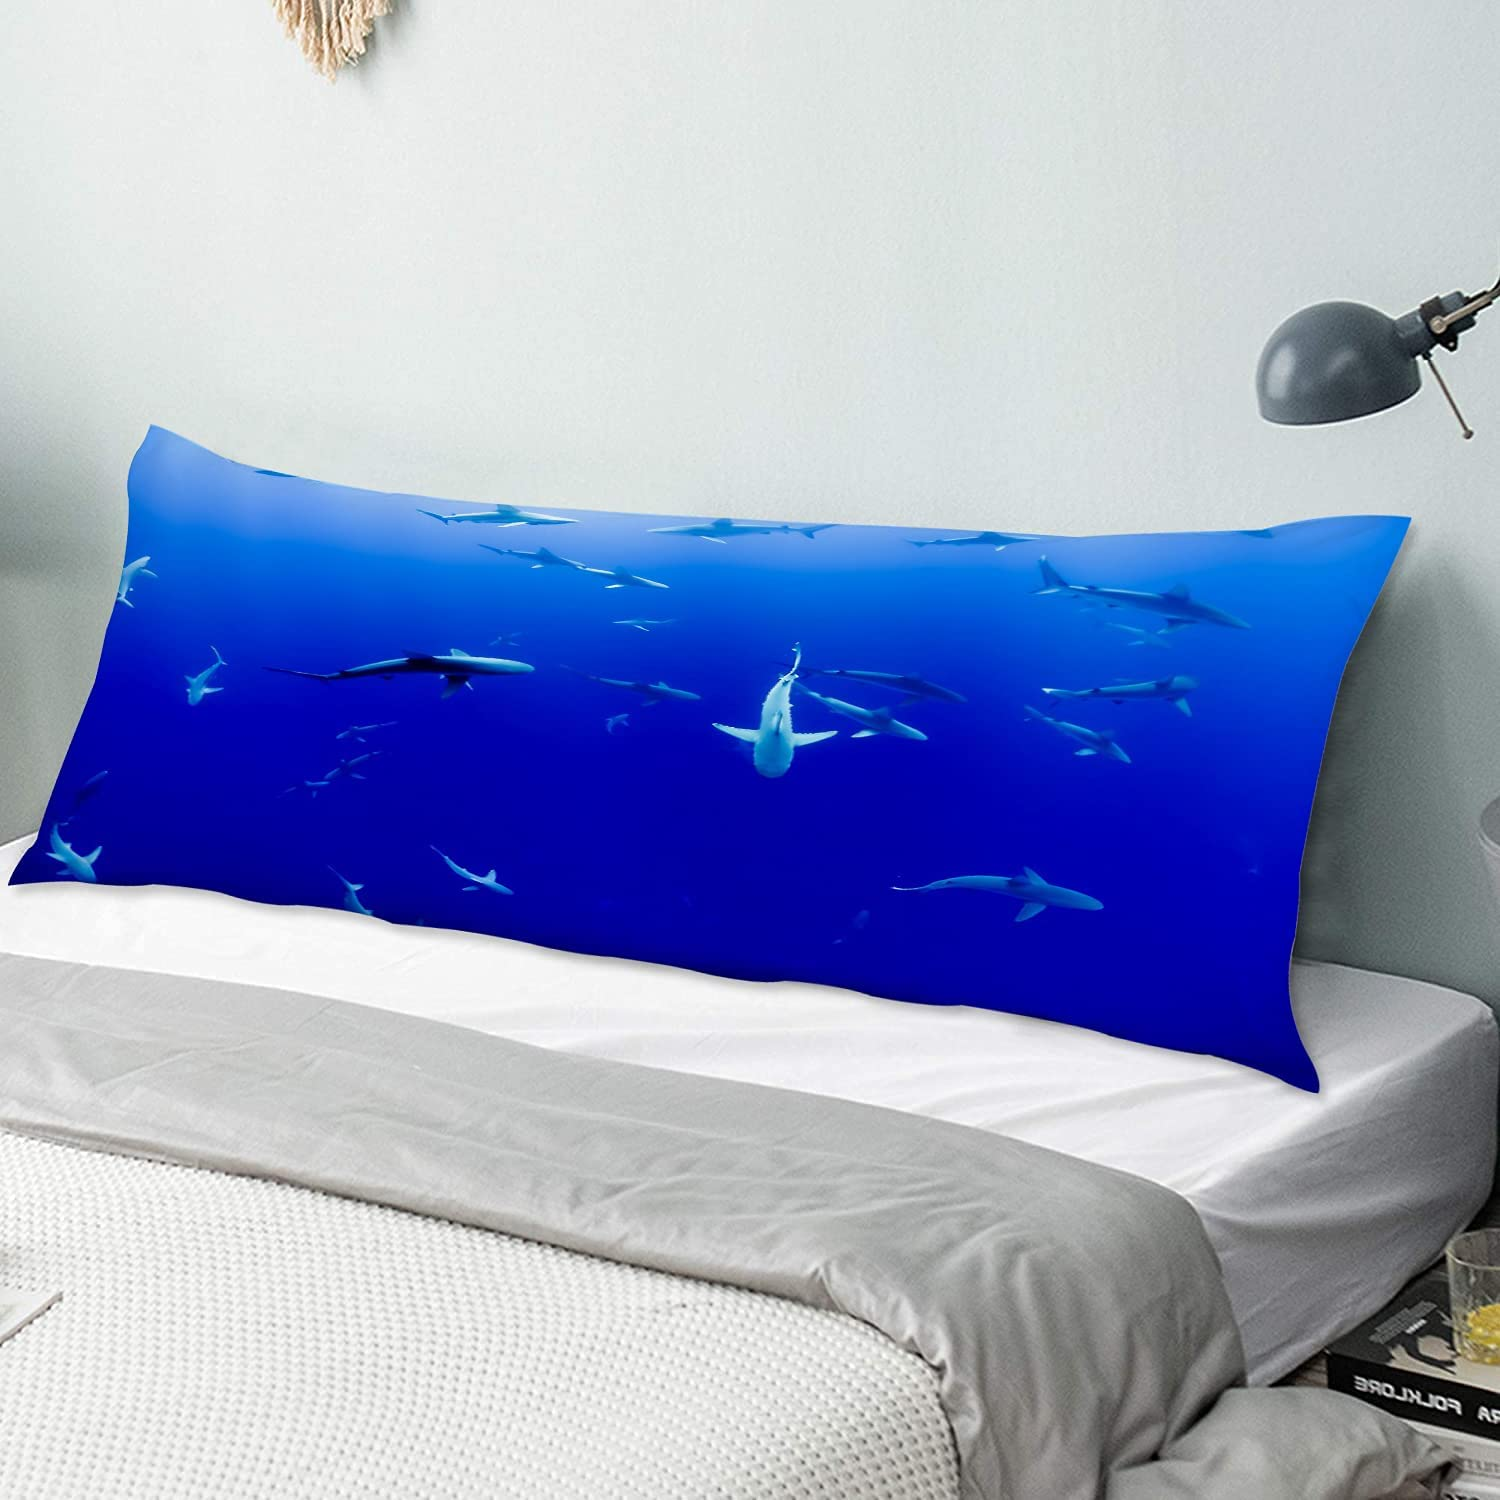 KENADVI Body Pillow Cover Pillowcase Gathering Dee The Sharks Over item handling Max 84% OFF in